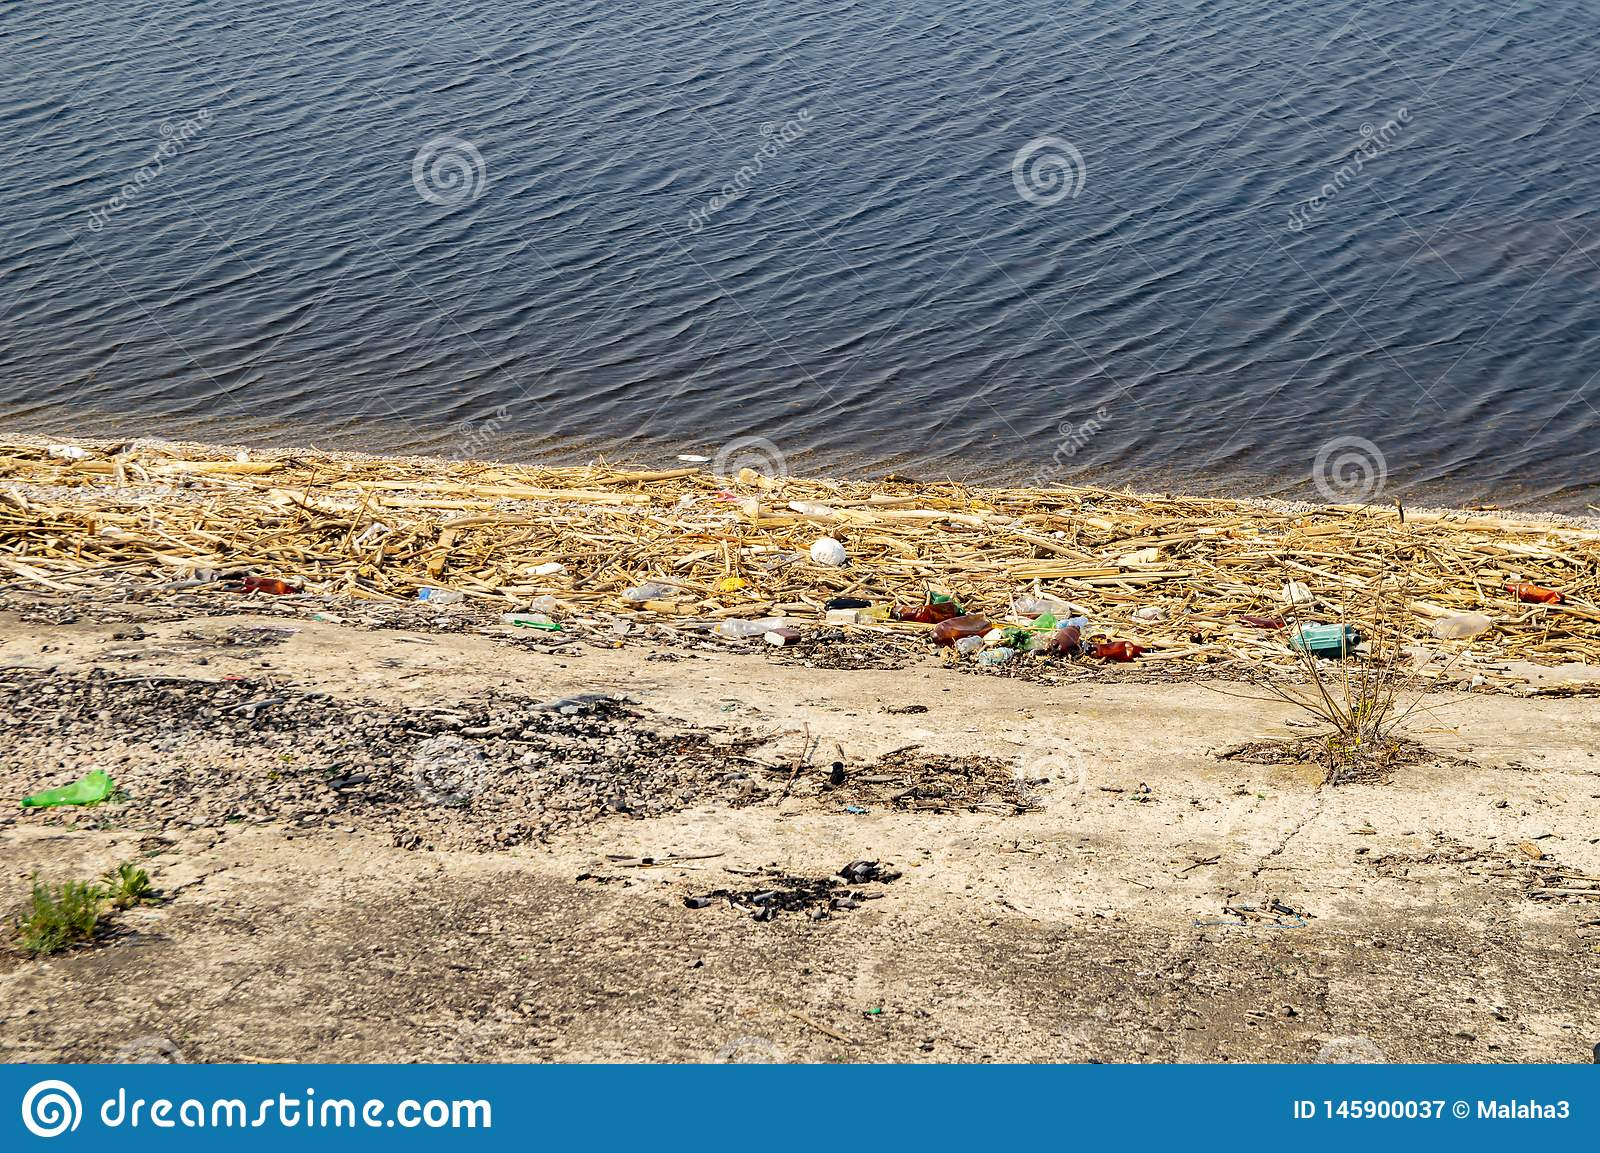 Plastic bottles on the waterfront